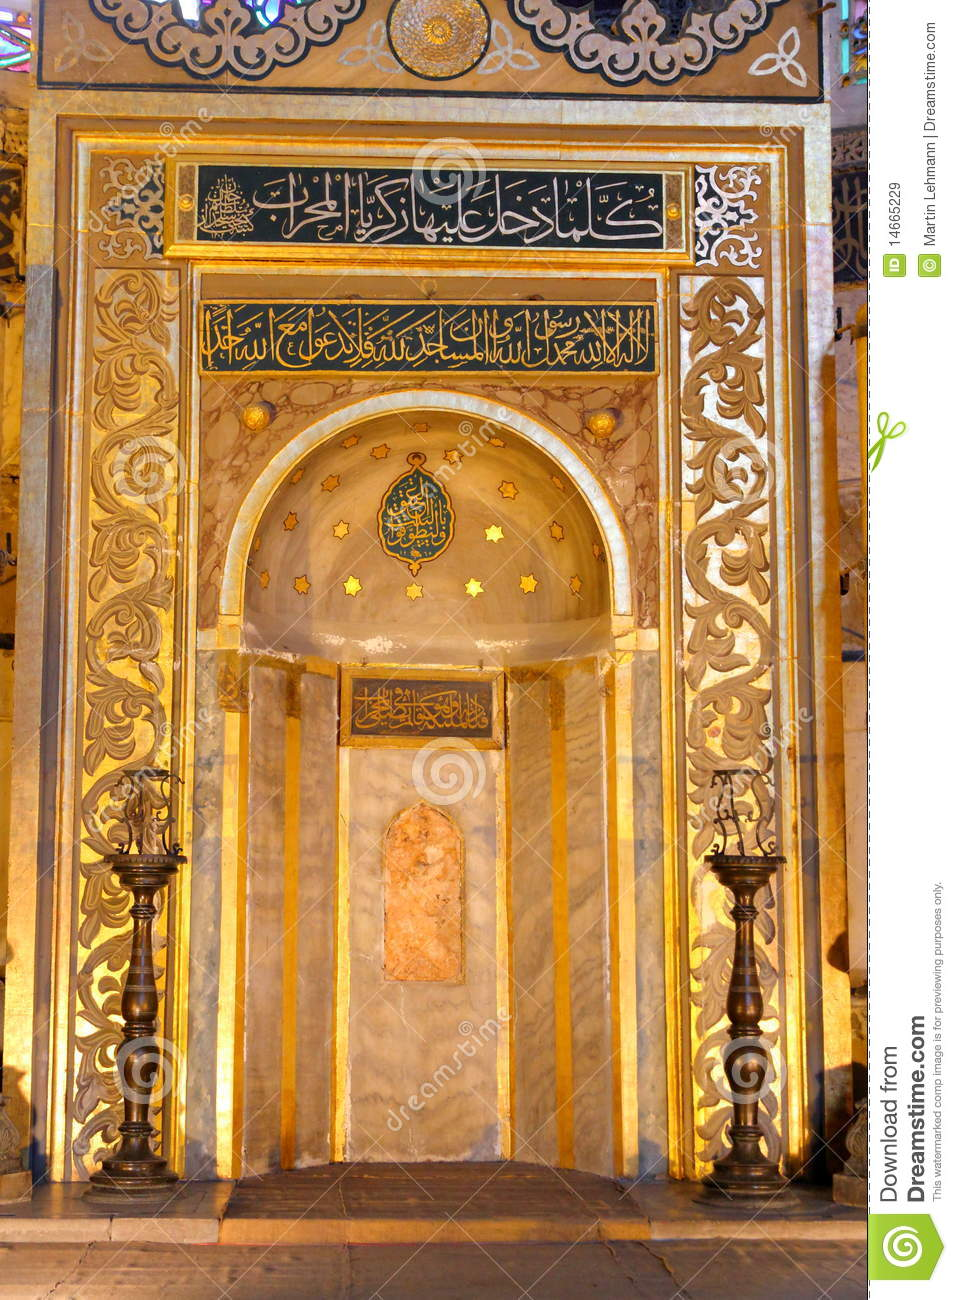 mihrab of hagia sofia royalty free stock images image boy praying clipart black and white Black Woman Praying Clip Art